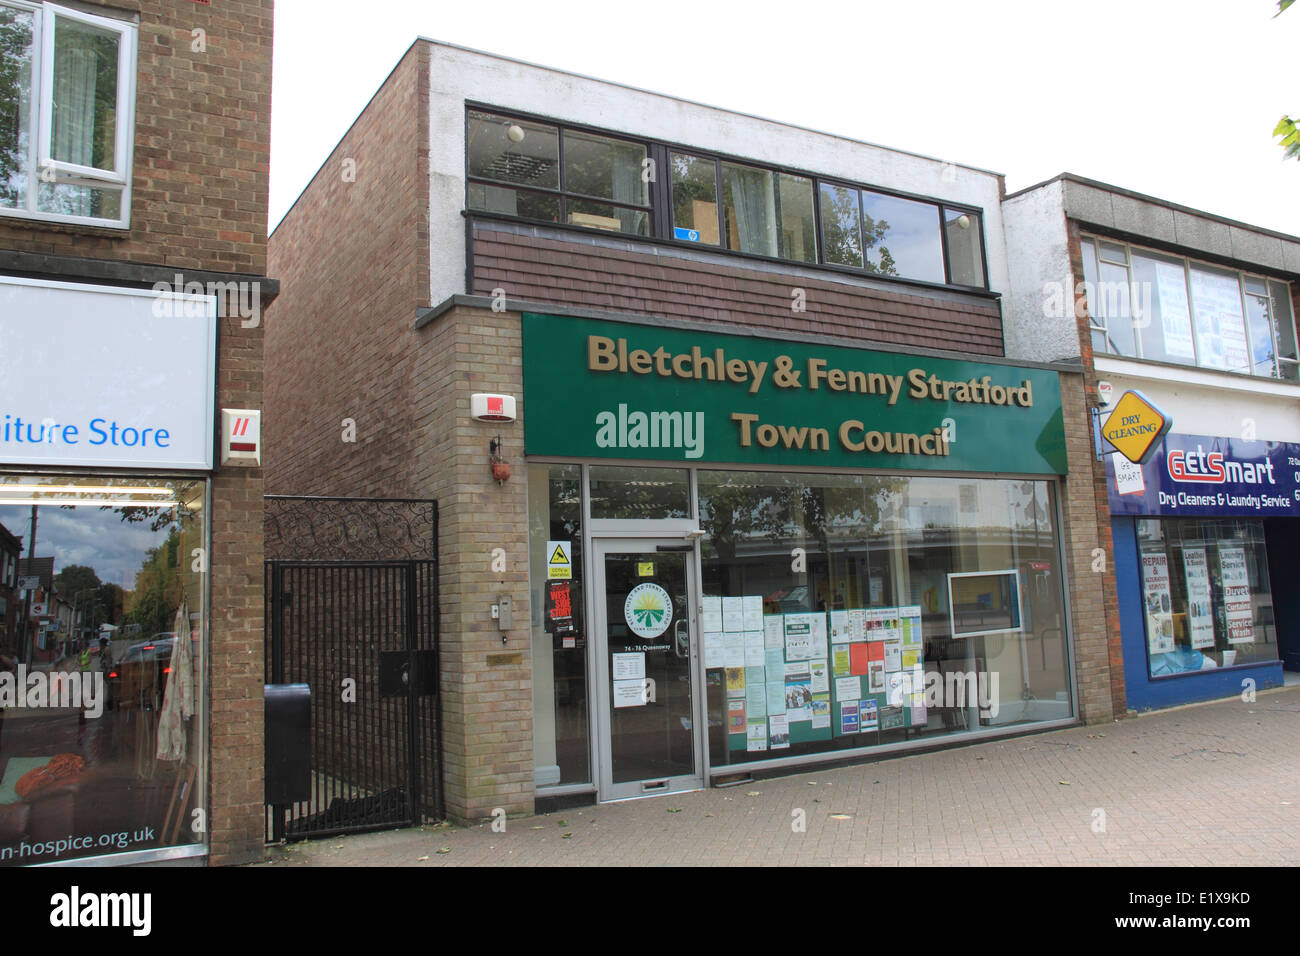 Bletchley and Fenny Stratford Town Council, Milton Keynes, Buckinghamshire, England, Great Britain, United Kingdom, - Stock Image